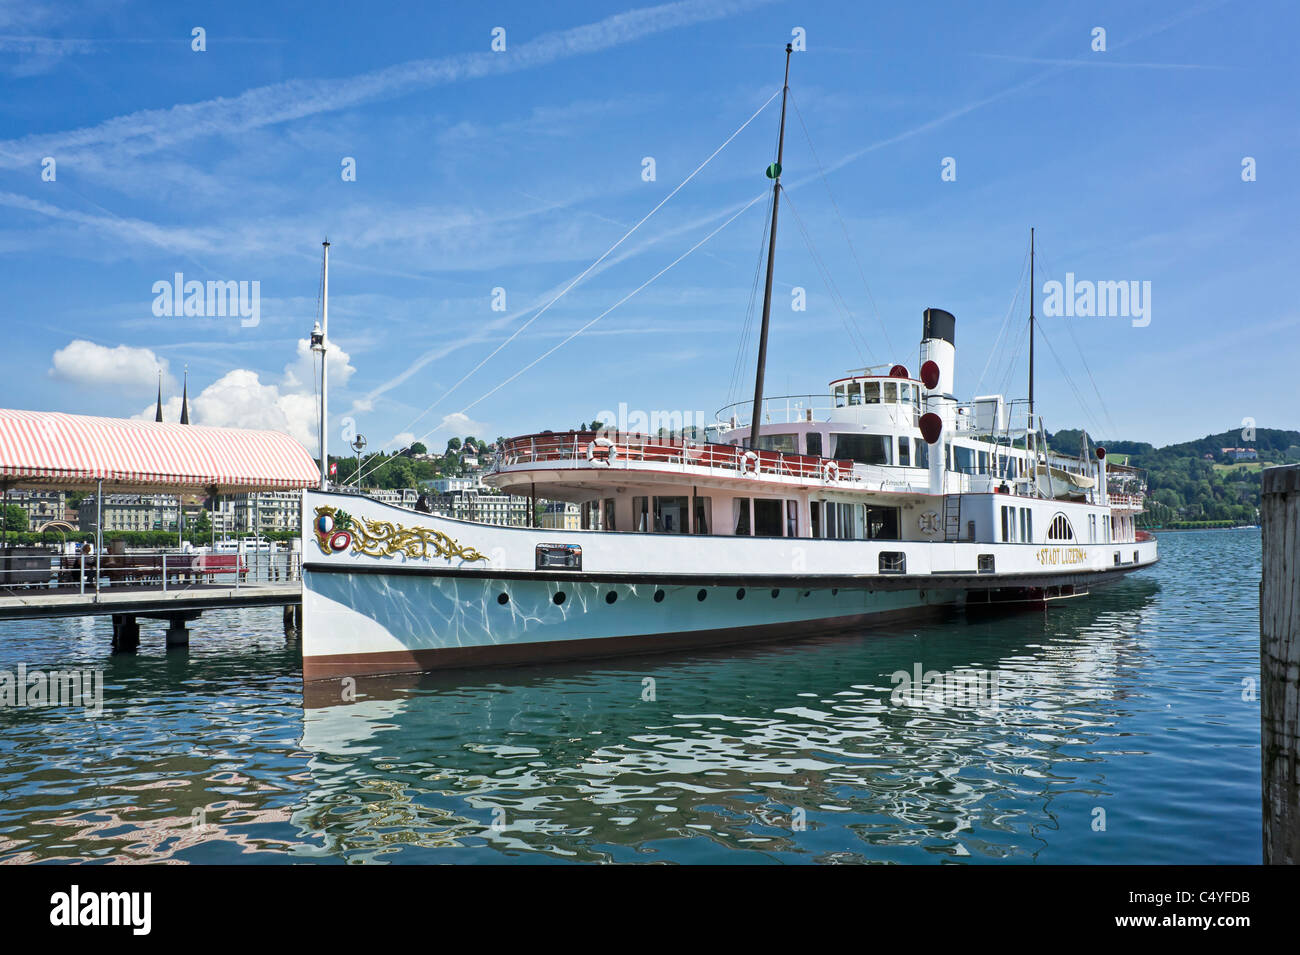 Swiss paddle steamer Stadt Luzern moored at pier in Lucerne on the Lake Lucerne awaiging passengers - Stock Image